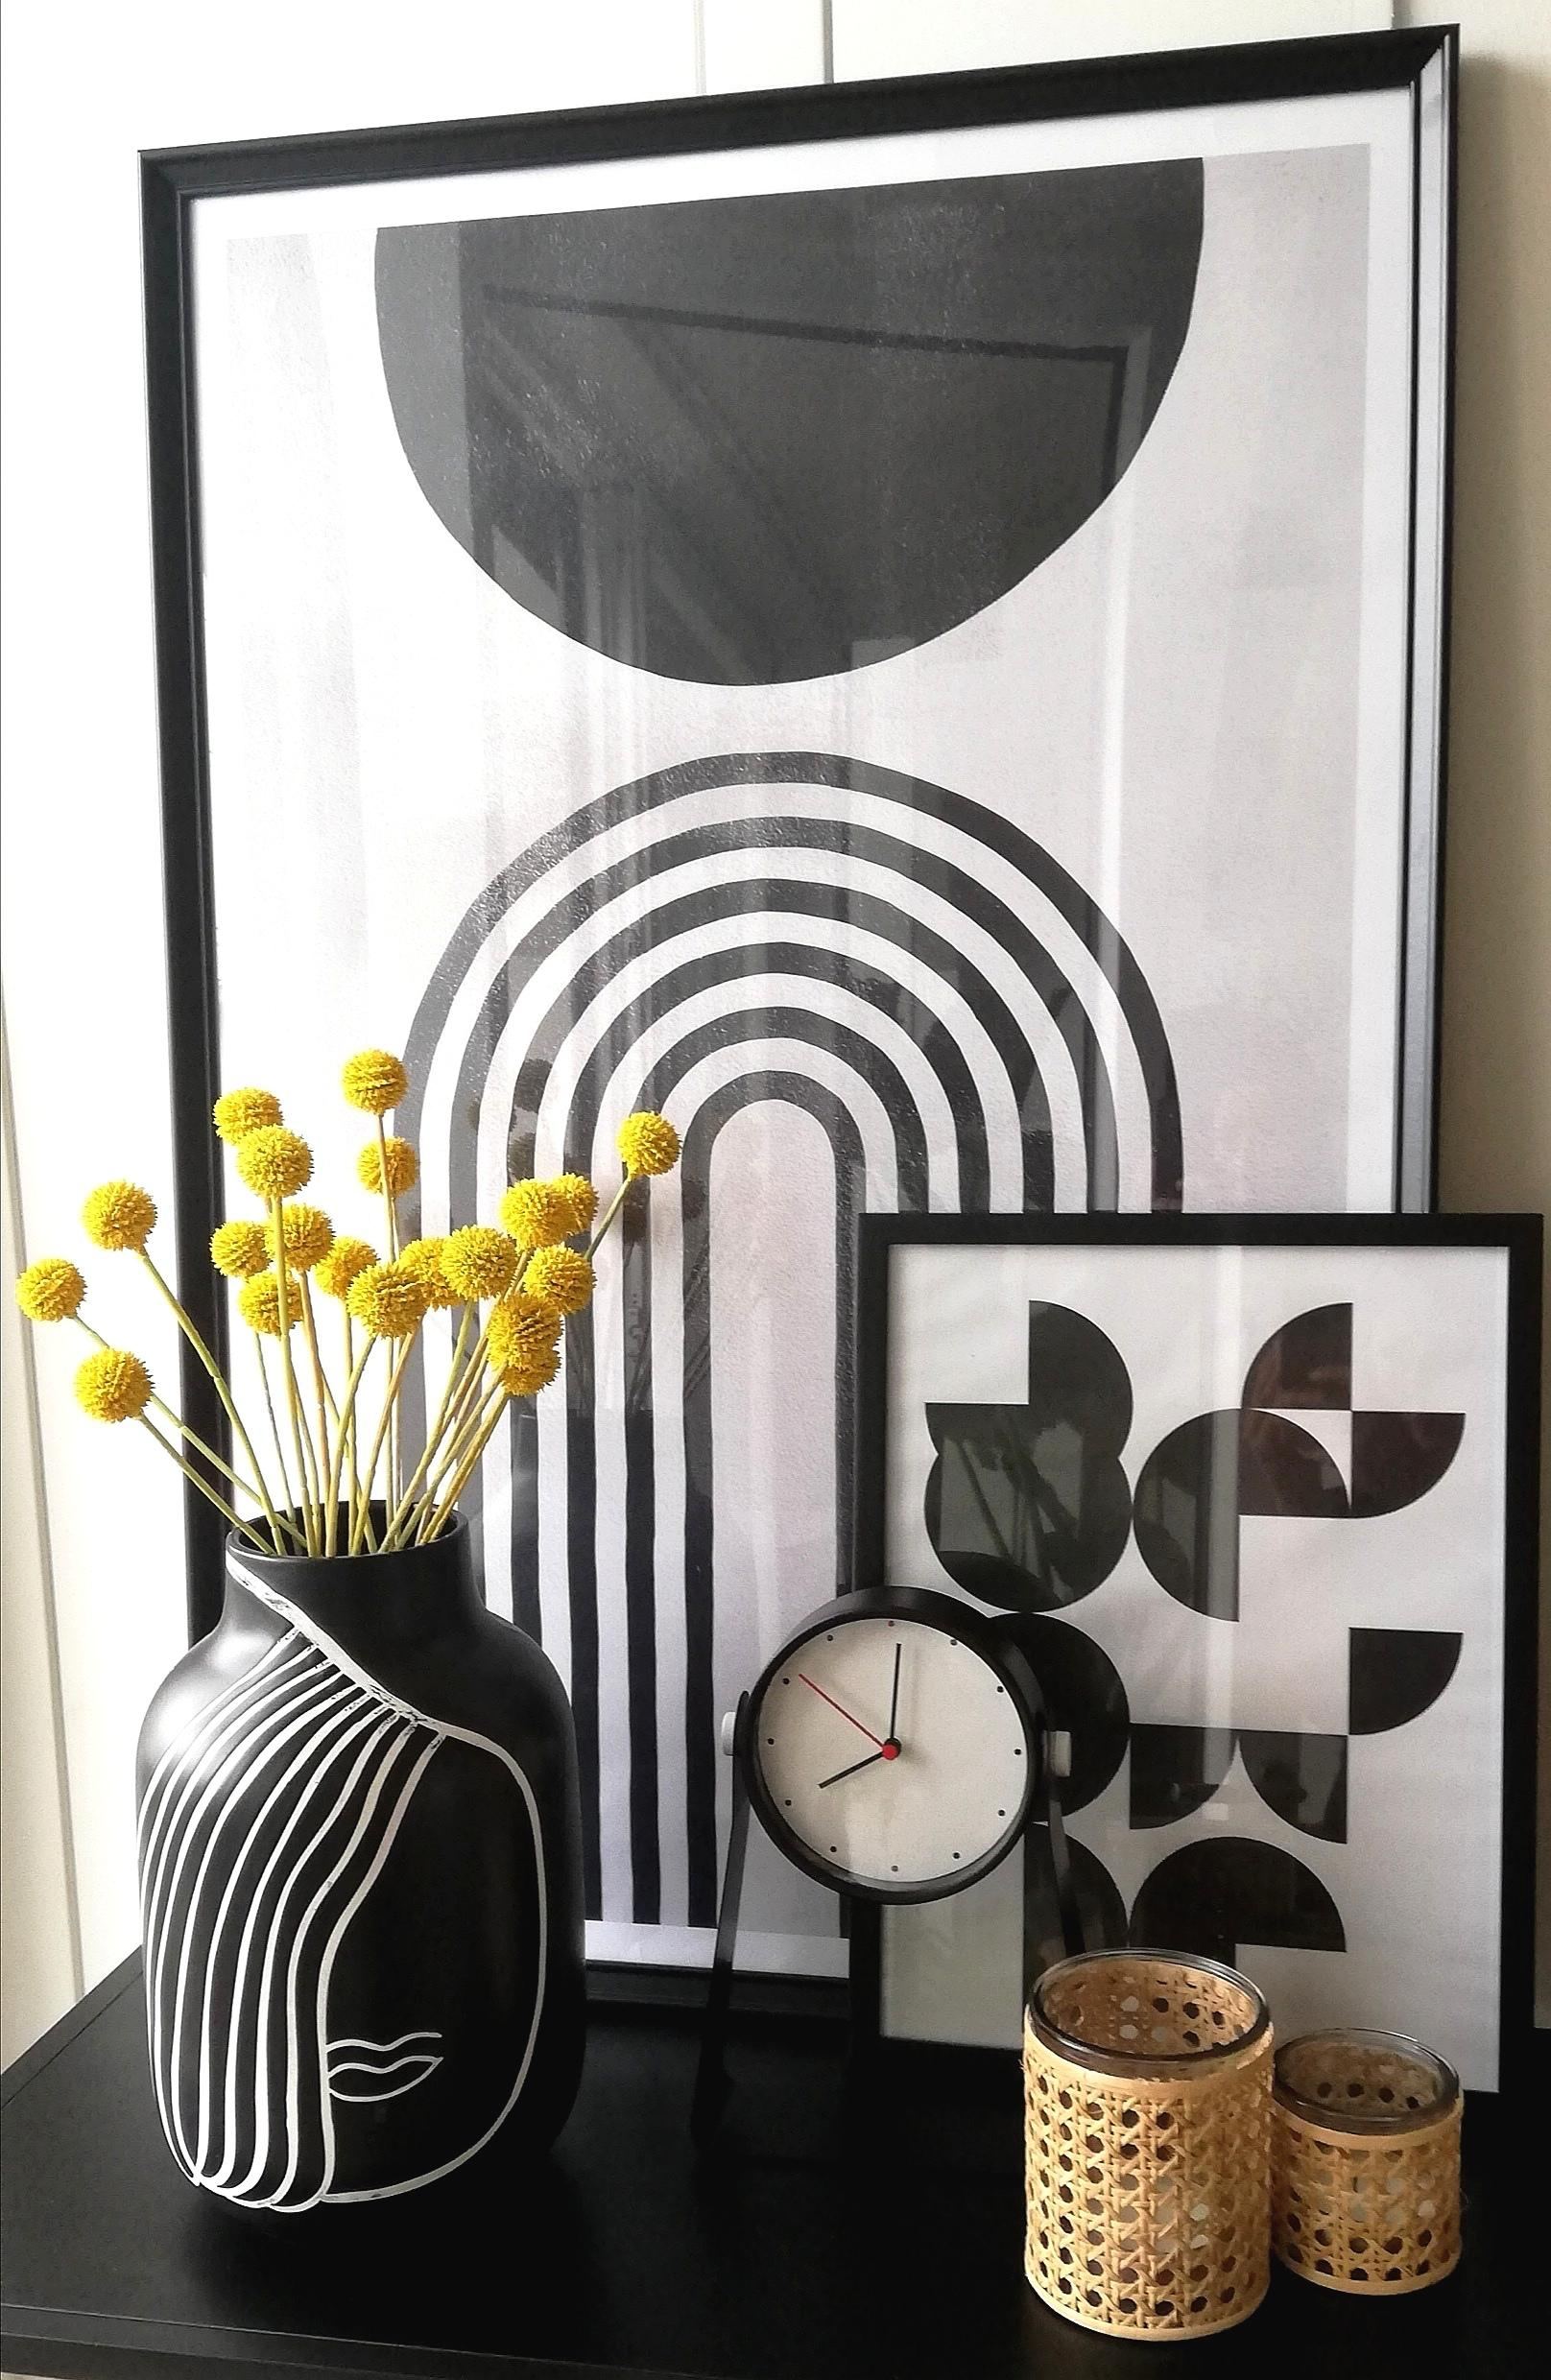 #motelamiio #vase #porcelain #blackandwhite #decor #decoration #living #home #graphic #interior #homeaccessories